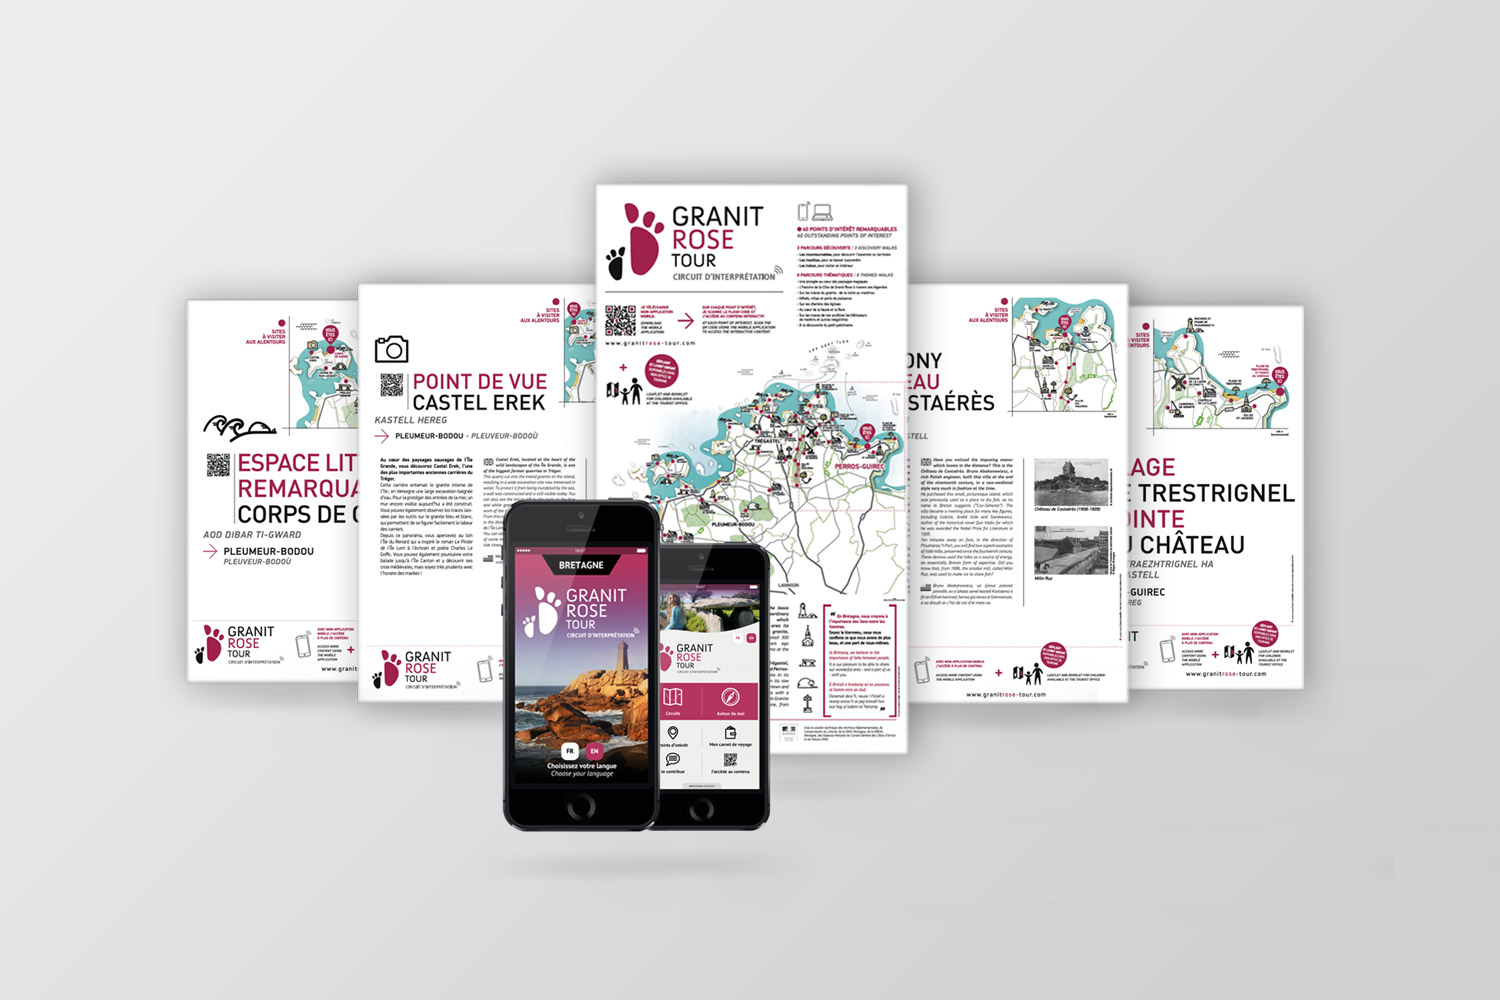 Granit-Rose-Tour-Creation-identité-visuelle-plan-illustration-AgenceCoqueliko-Lannion